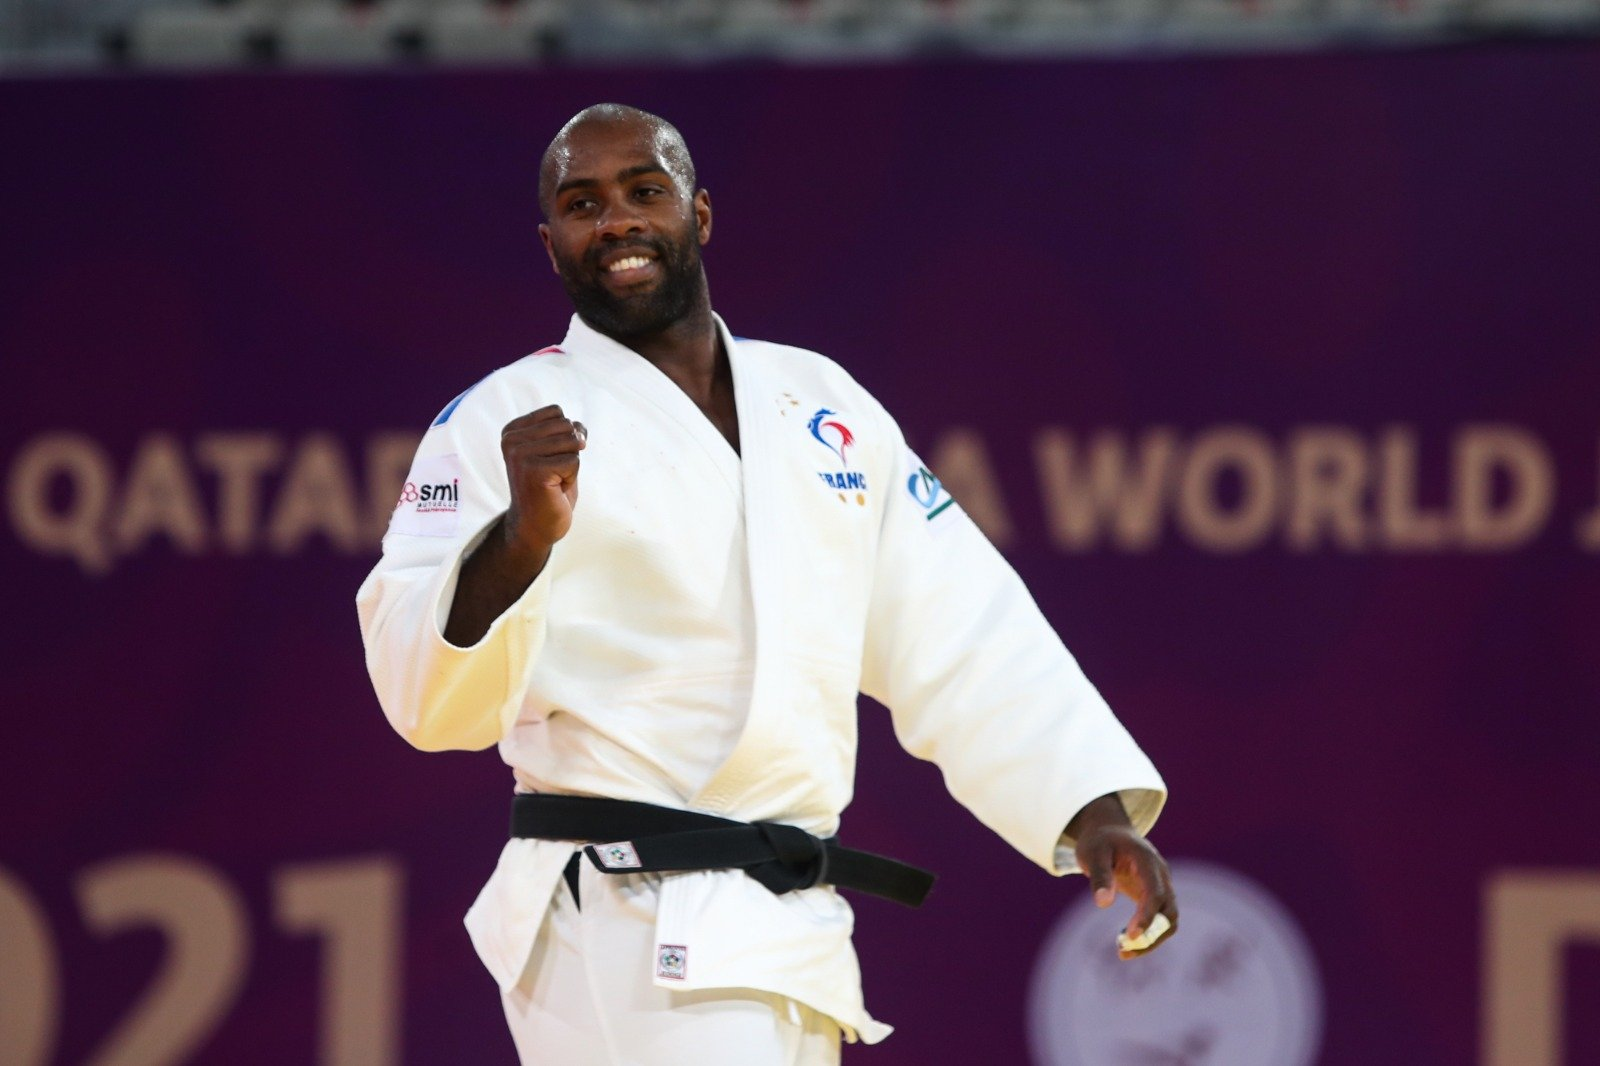 NORMAL SERVICE RESUMES AS RINER TAKES FOURTH MASTERS TITLE